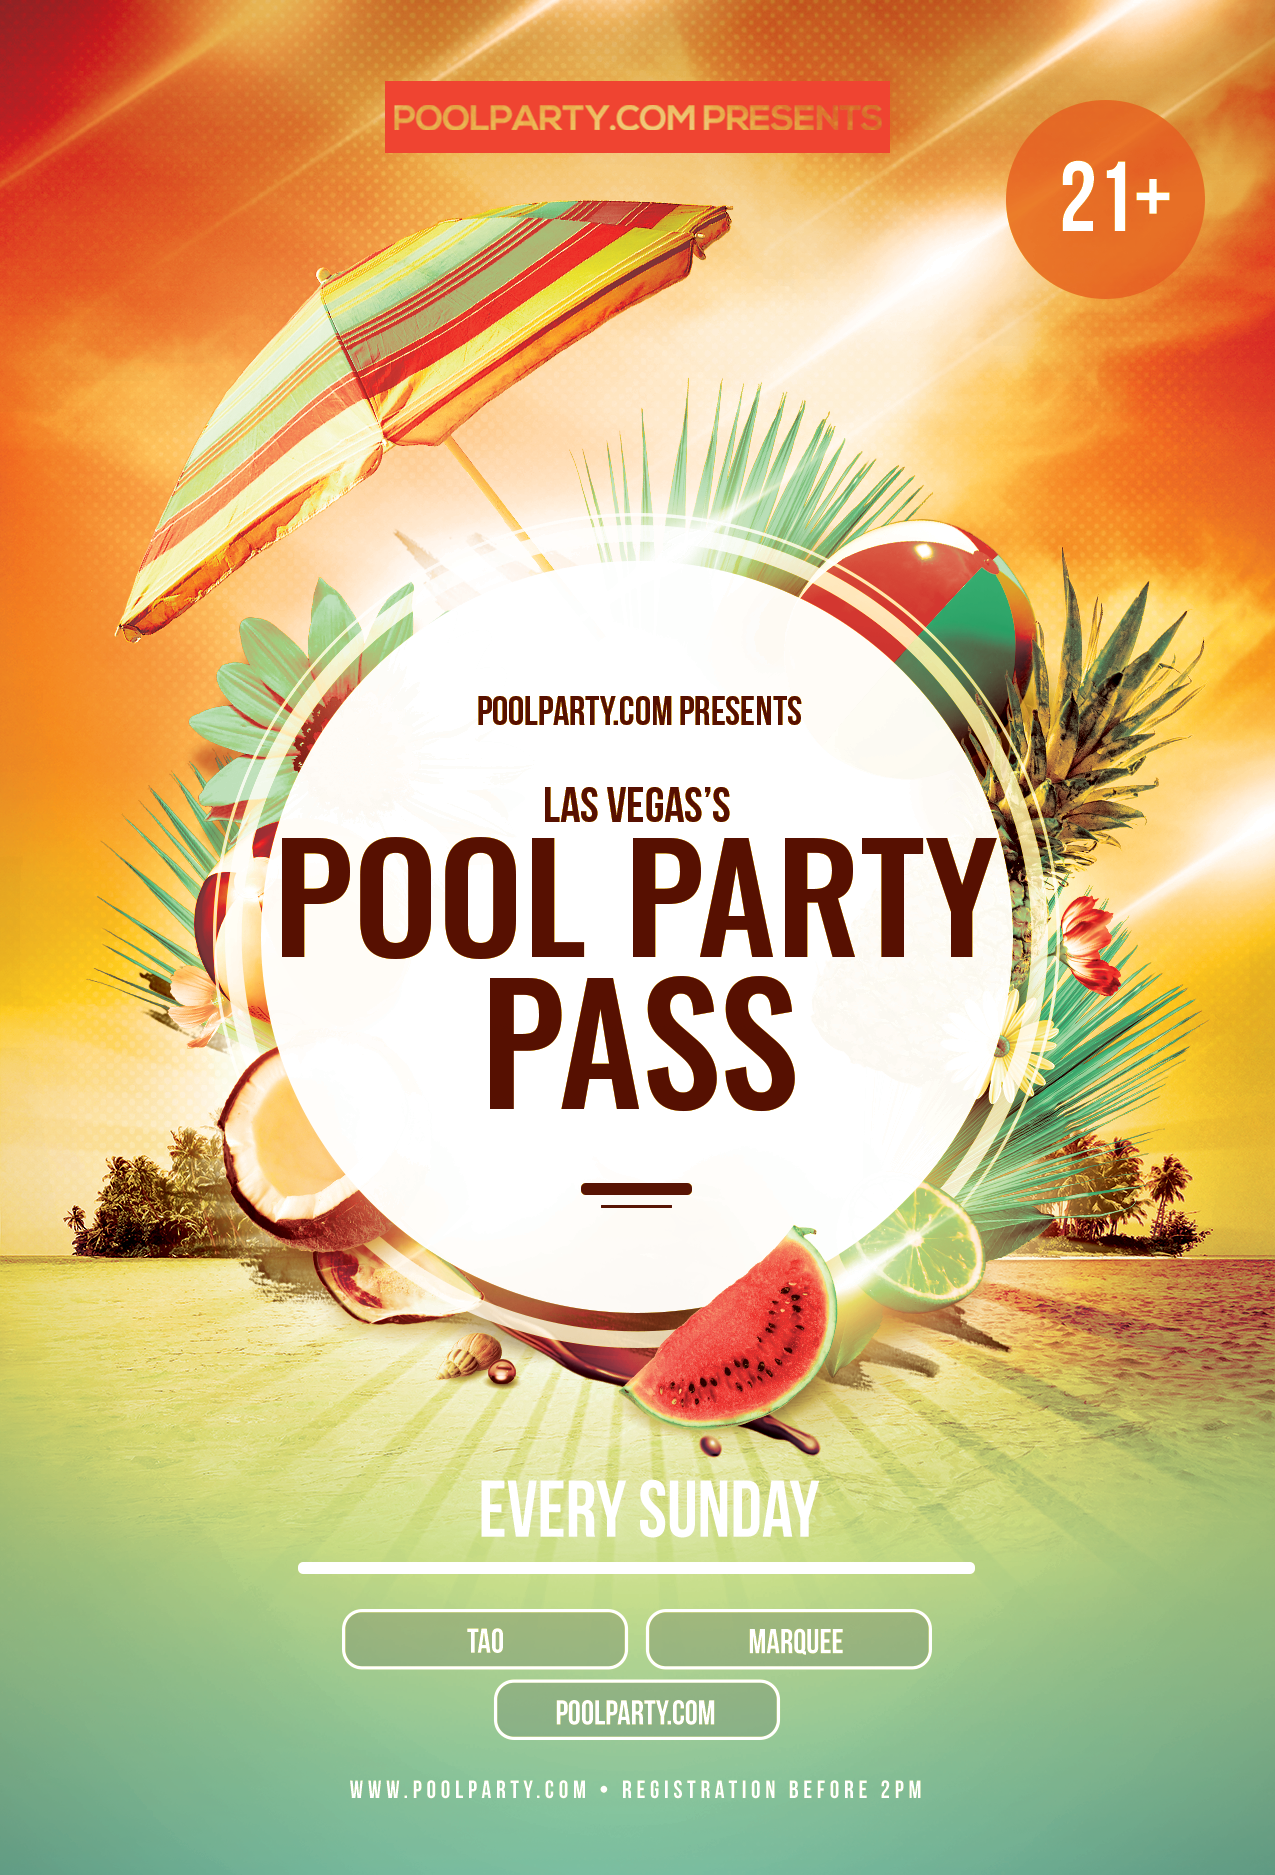 Sunday's Pool Party Pass (May 17th 2020)